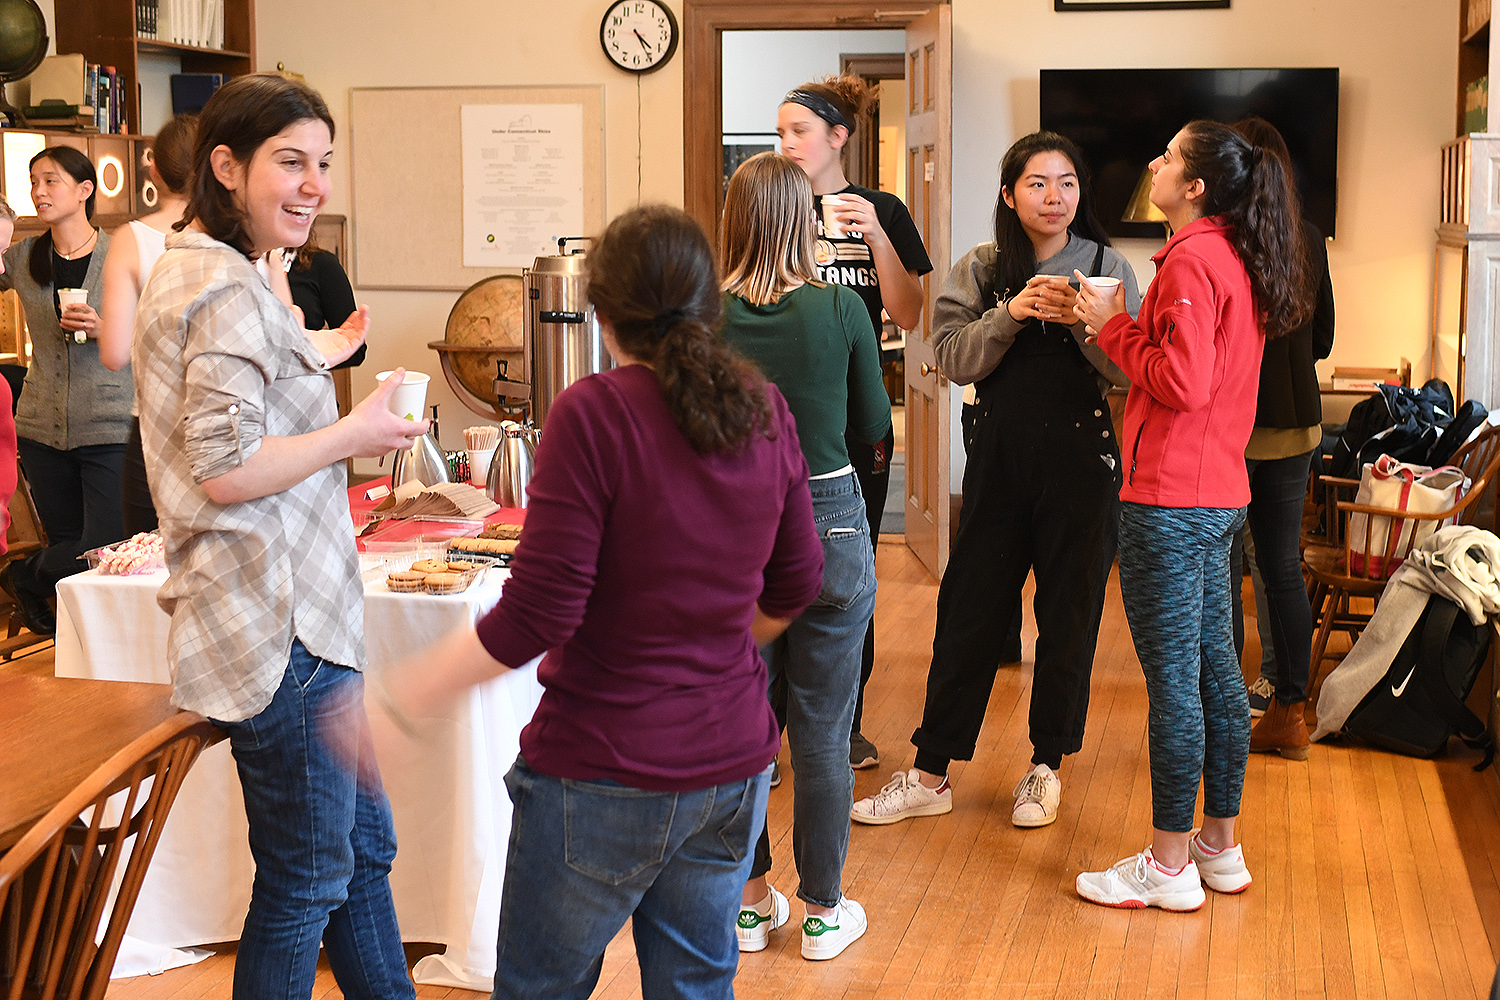 On Feb. 15, the Wesleyan Women in Science group hosted Student-Faculty Tea for WesWIS students and female science faculty. The event took place inside the Van Vleck Observatory's library.